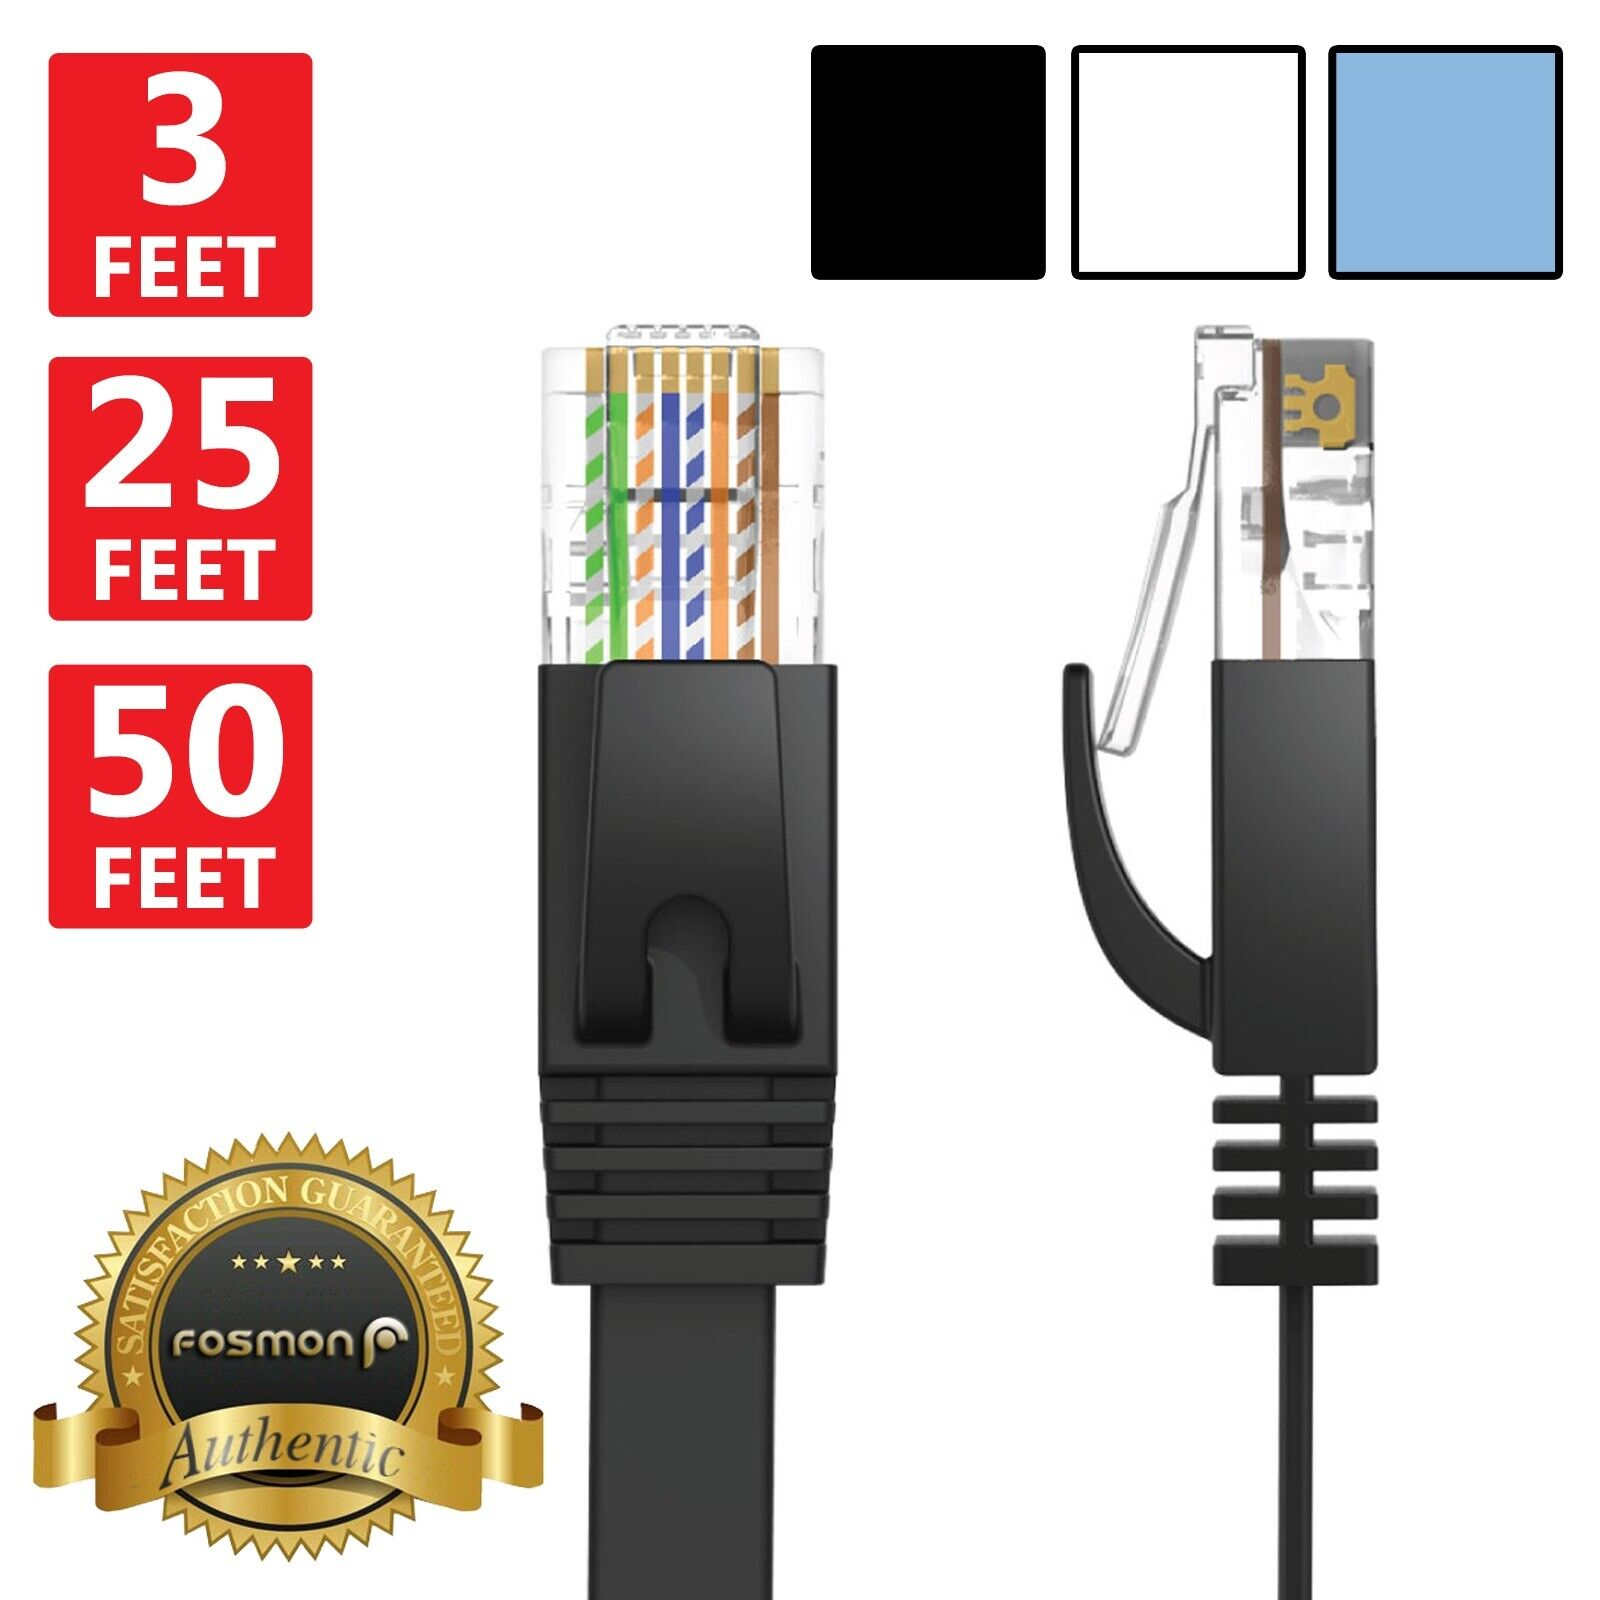 Fosmon 3 6 10 15 25 50 Ft Cat6 Flat Slim Ethernet Rj45 Network Lan 6m Cat5e Cat 5e Patch Cable Lead Wire 1 Of 1free Shipping See More